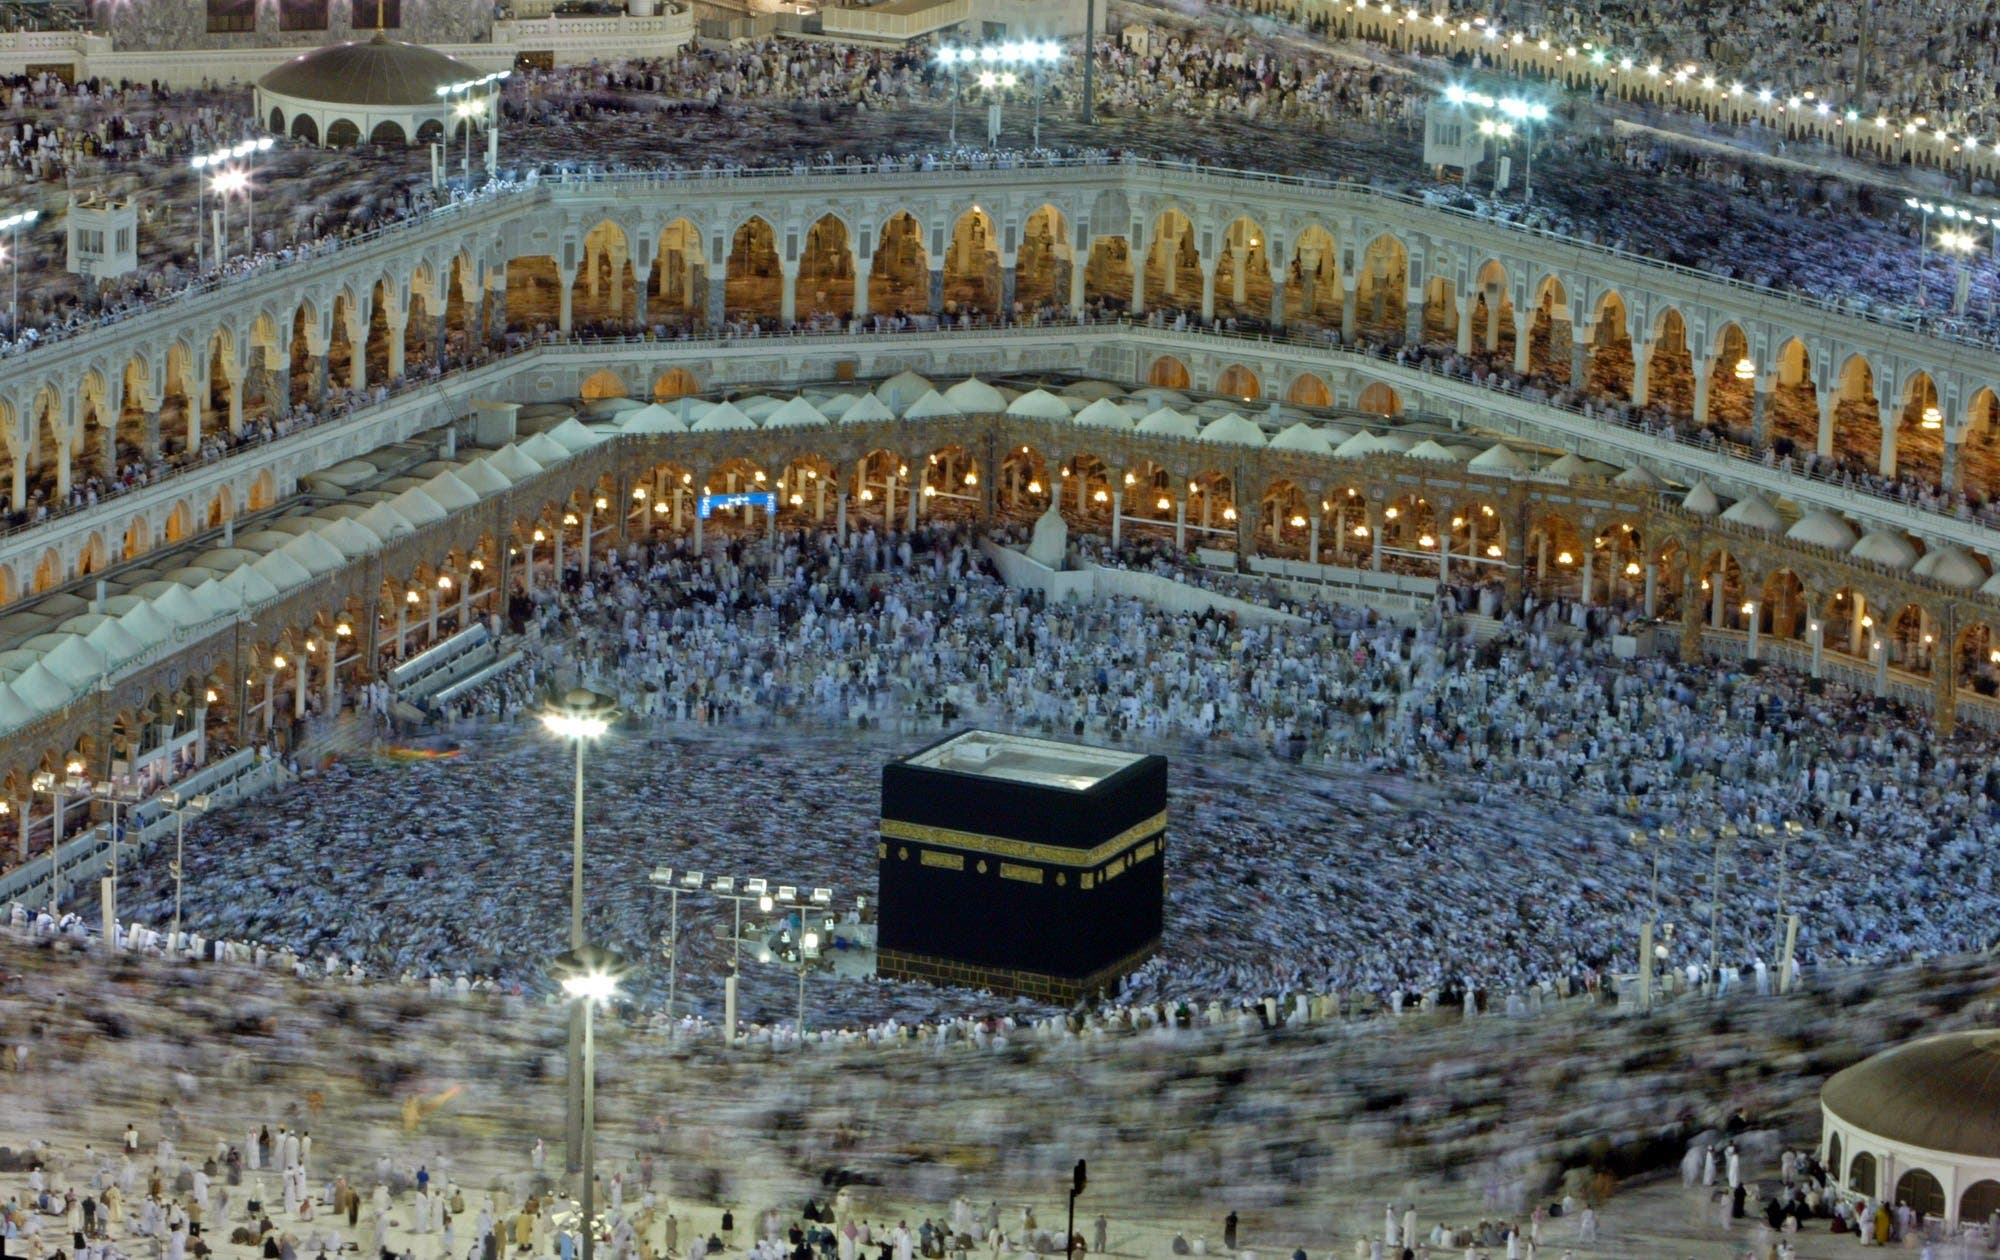 Mecca the Holiest Site of worship and focal point  for Muslims who face its direction during daily prayer, needs no introduction. Muslims often aspire to visit- whether for annual pilgrimage (once in a lifetime is required) or 'Omra'.